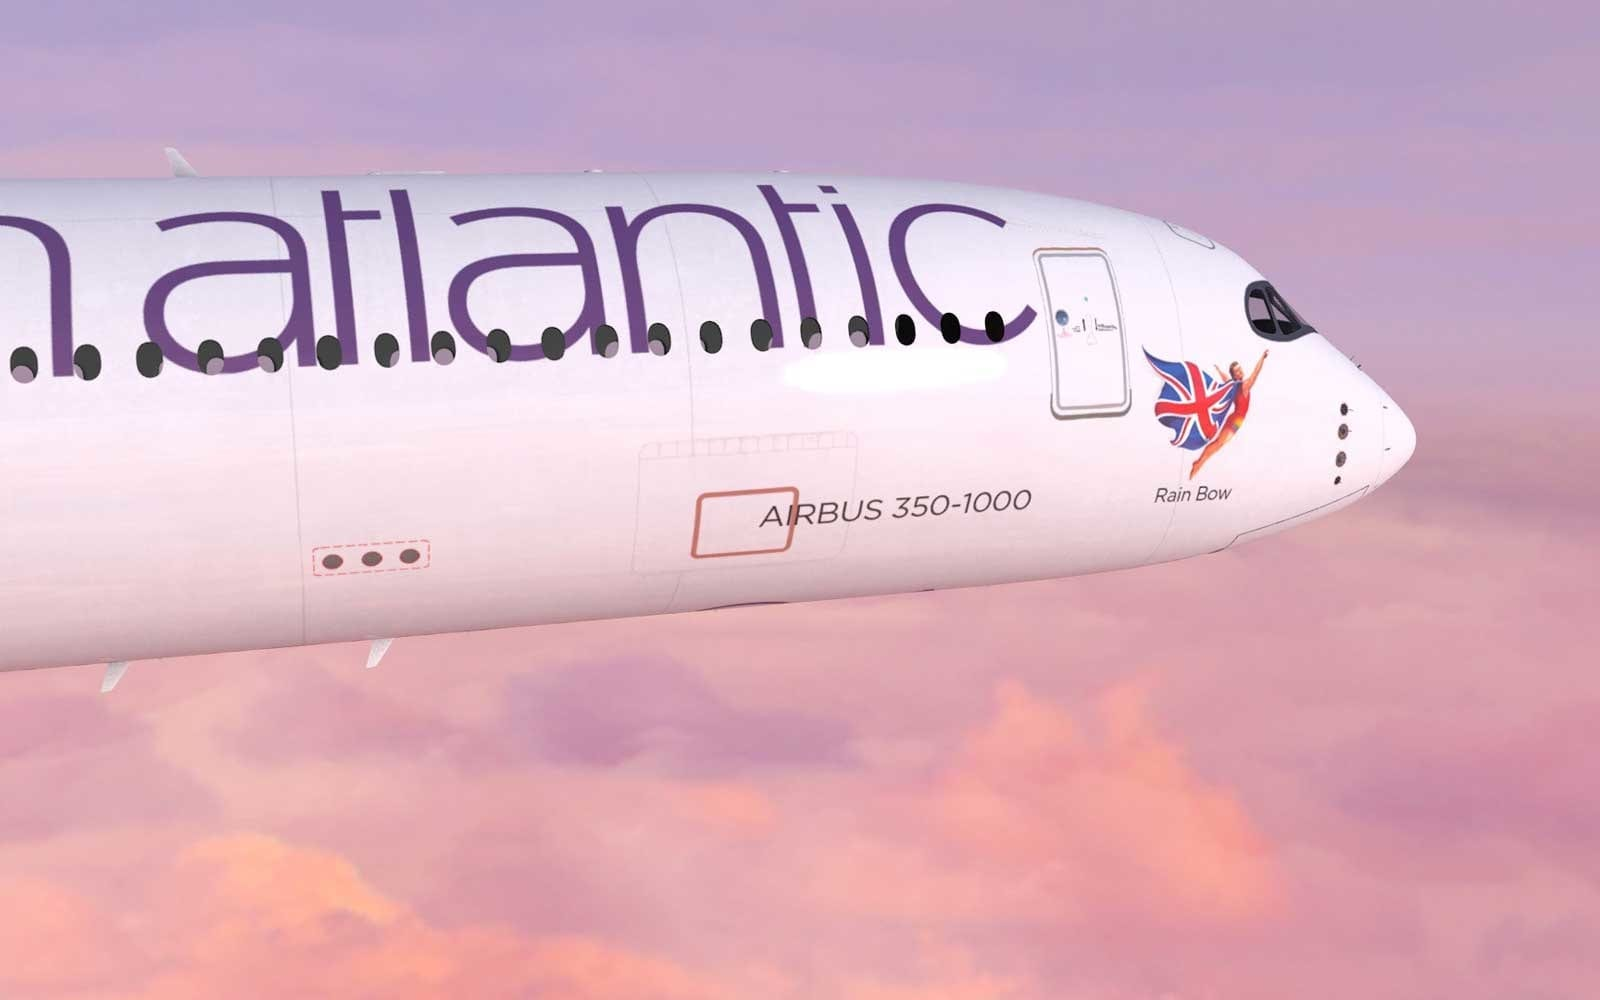 Virgin Atlantic A350: Official Launch Date And Flight #'s For NYC Debut…